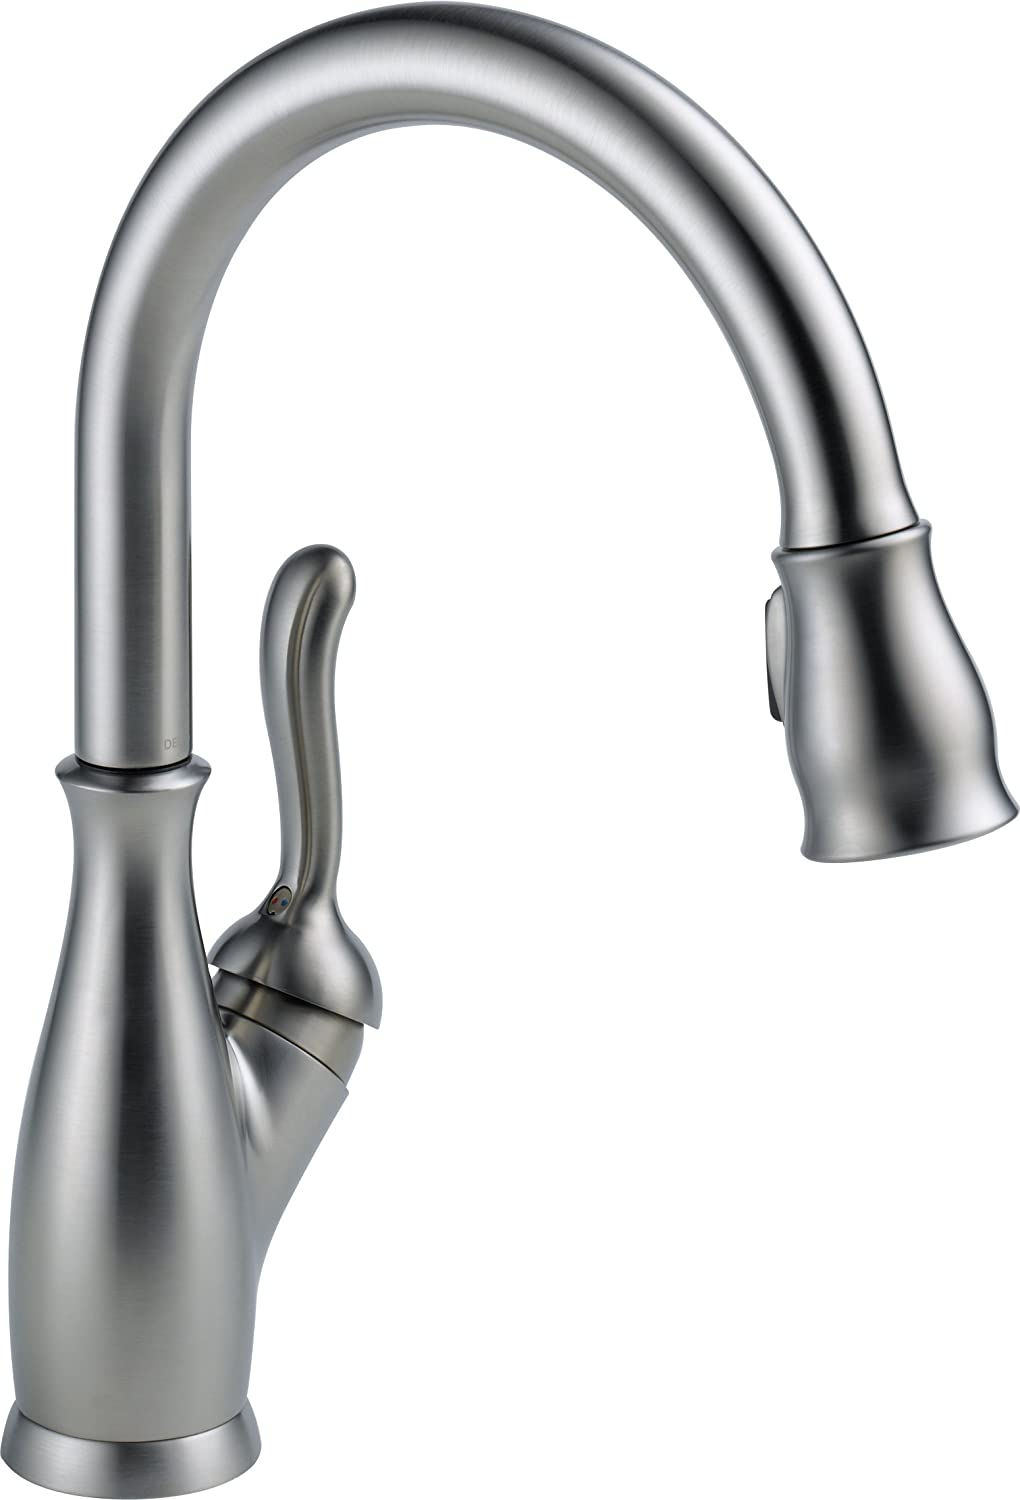 ordinary Delta Faucet Kitchen #1: Delta Faucet 9178-AR-DST Leland Single Handle Pull-Down Kitchen Faucet with  Magnetic Docking, Arctic Stainless - Touch On Kitchen Sink Faucets -  Amazon.com